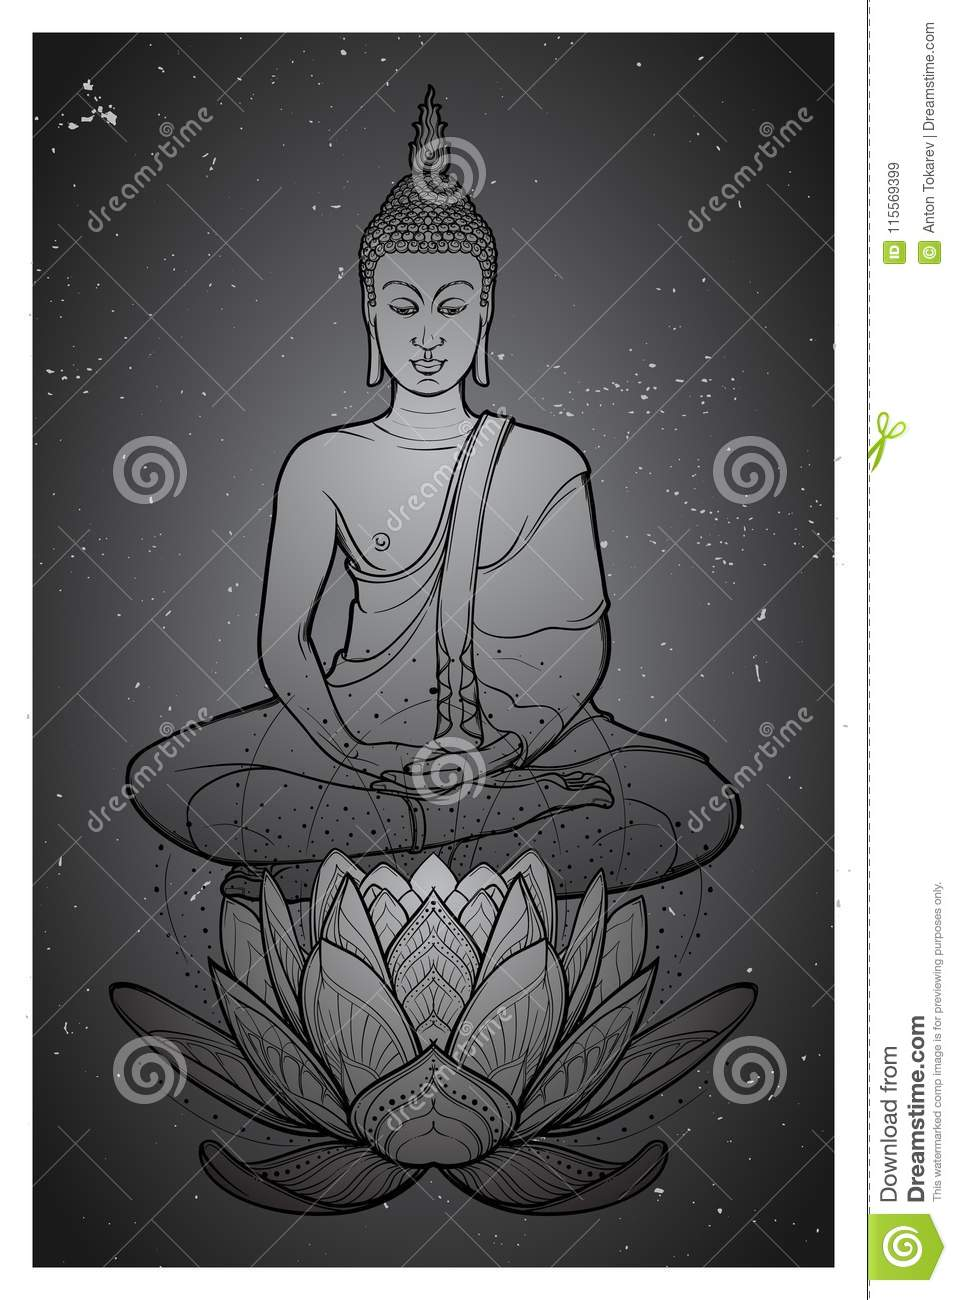 Buddha sitting on a lotus flower and meditating in the single lotus download buddha sitting on a lotus flower and meditating in the single lotus position intricate izmirmasajfo